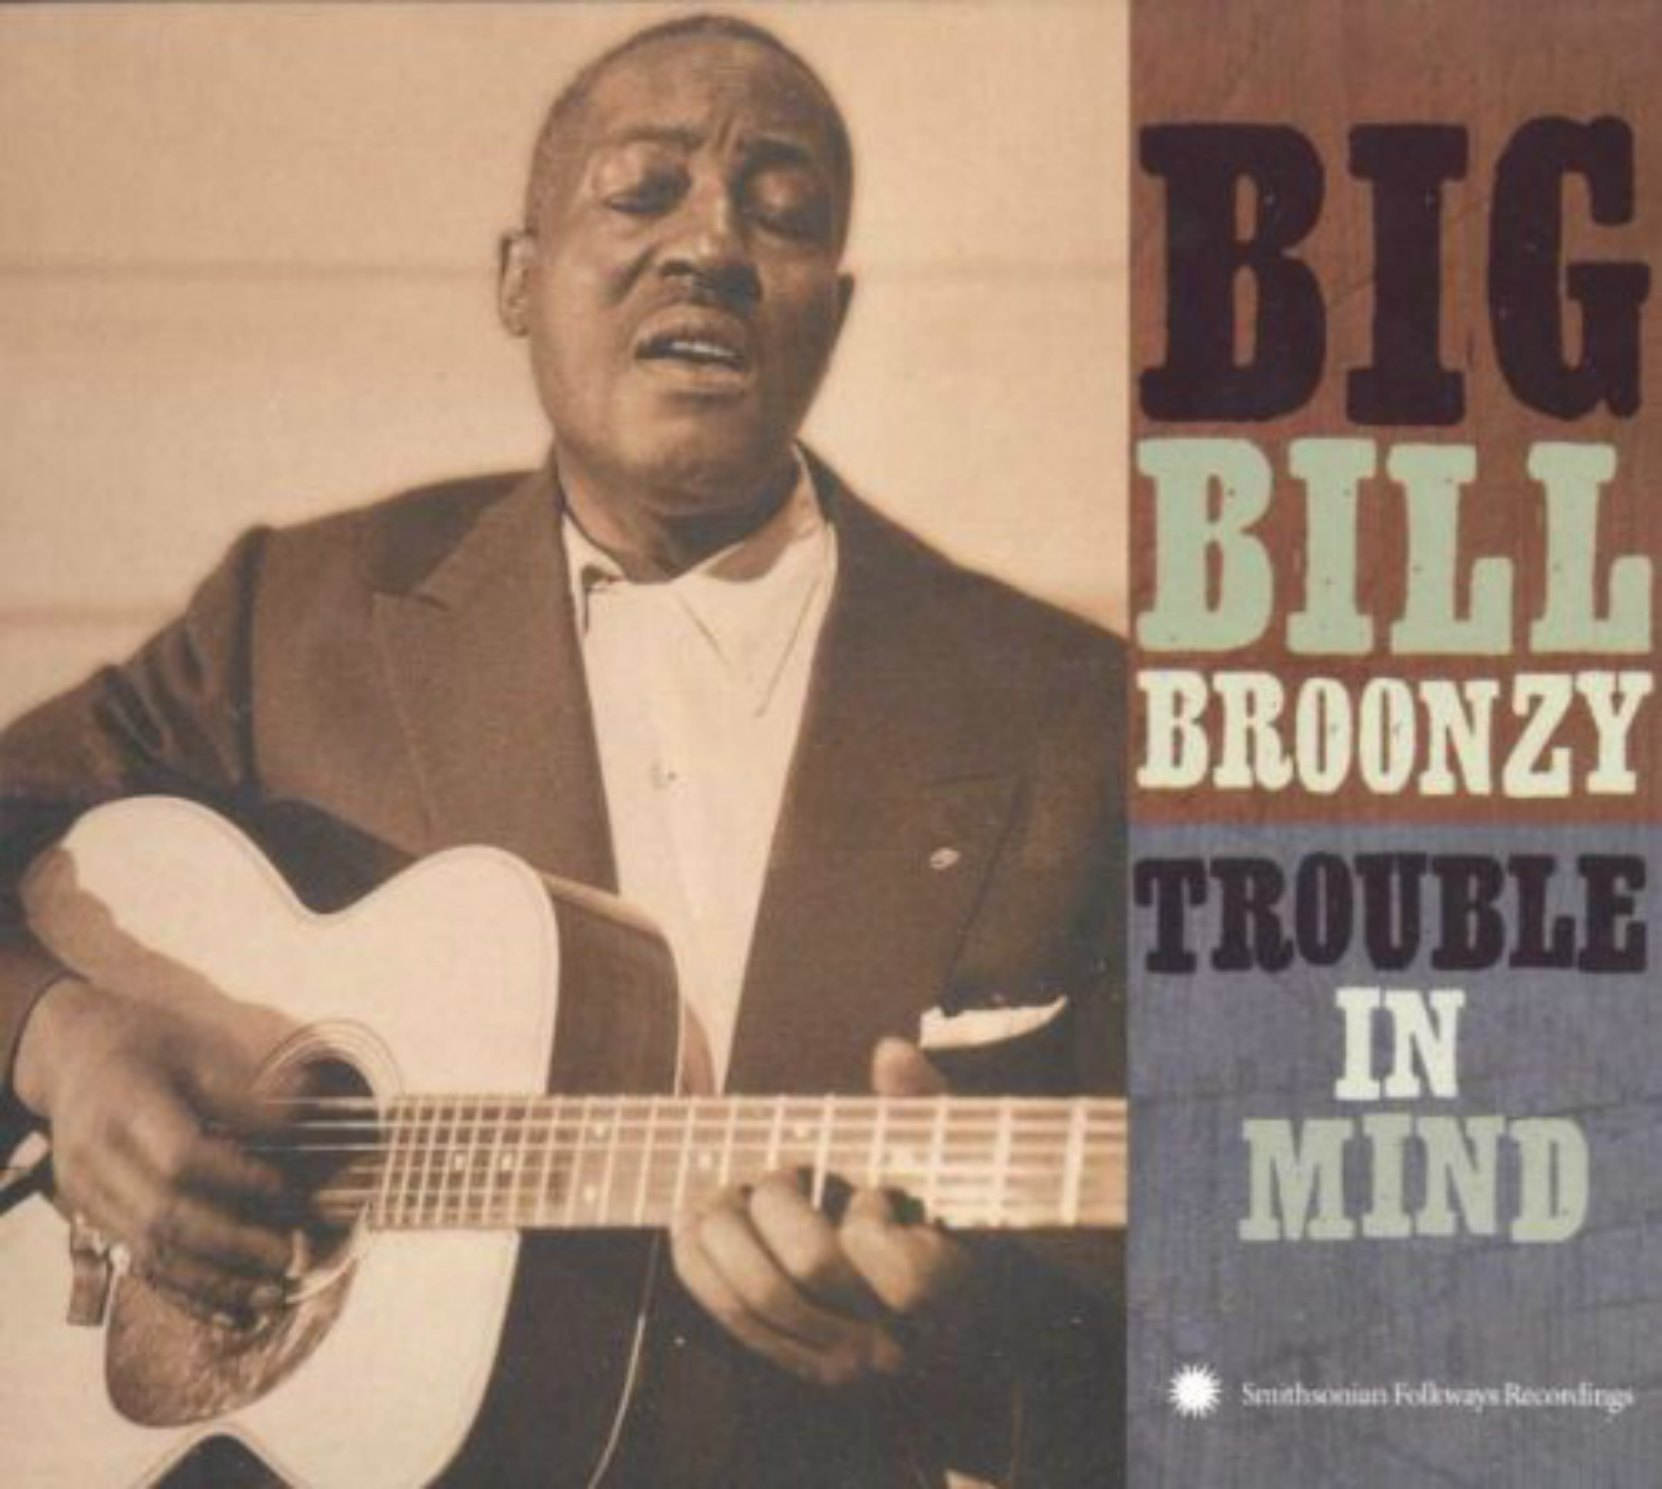 CD cover, Trouble In Mind by Big Bill Broonzy, on Smithsonian Folkways Recordings.